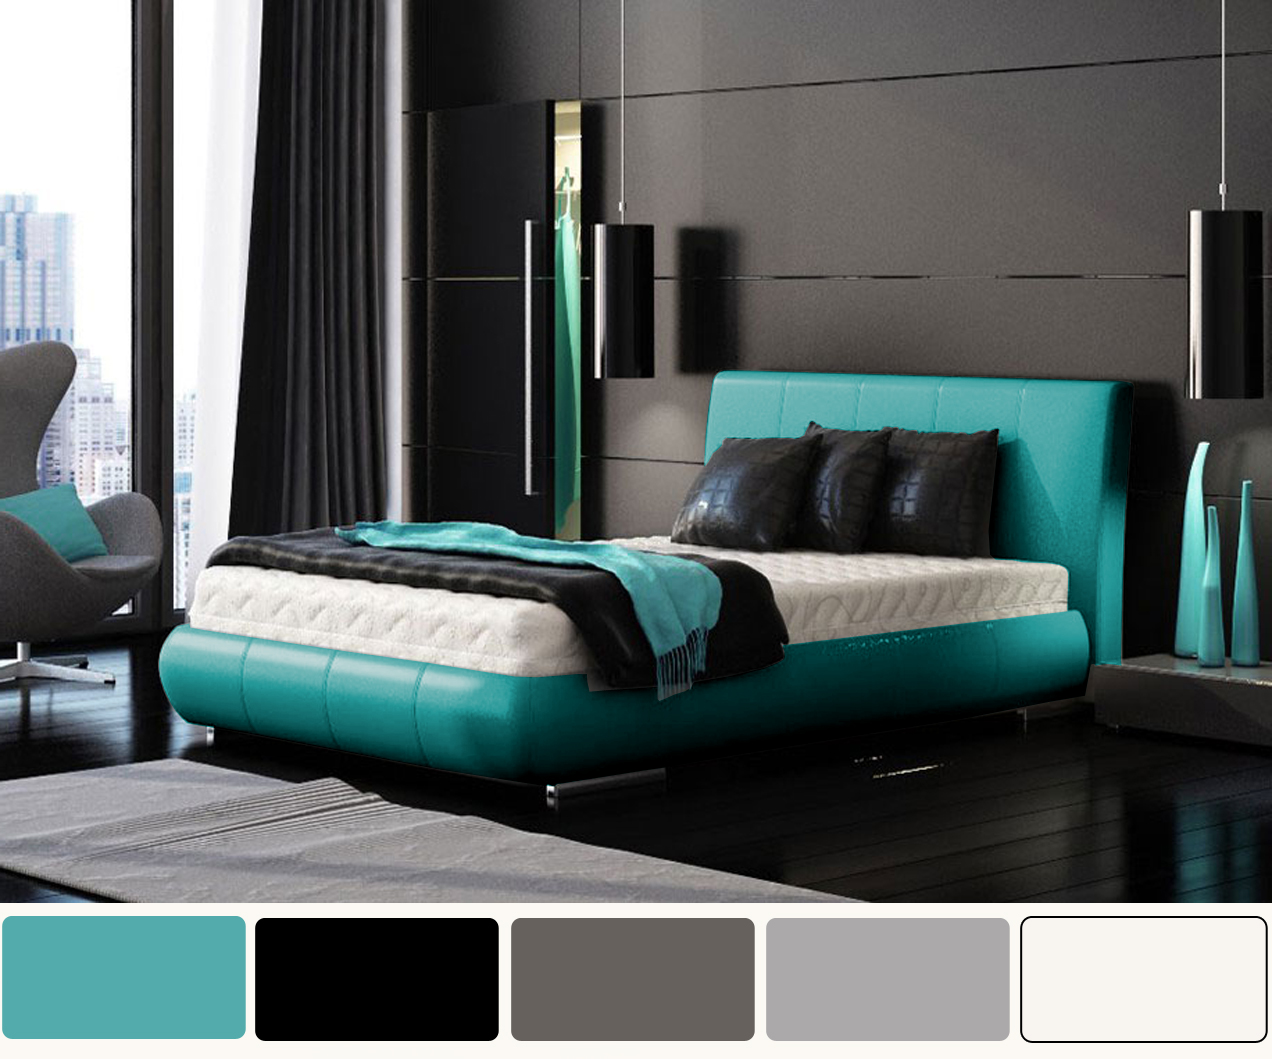 Black Bedroom Ideas Awesome Of Black Grey and Turquoise Bedroom Ideas Images